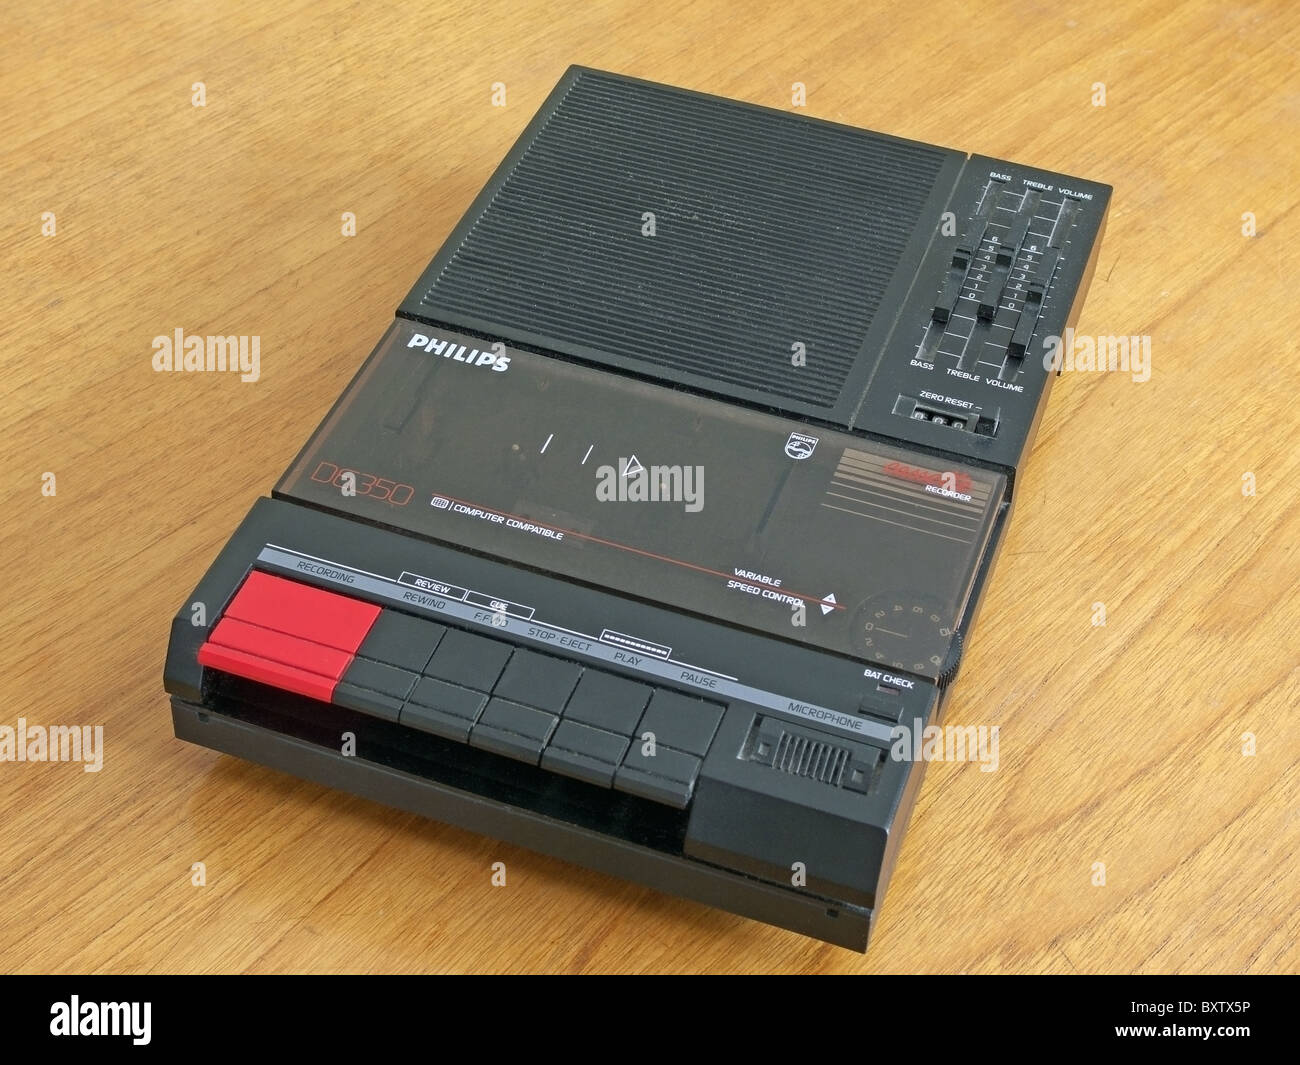 A 1980's Philips Brand Audio Tape Recorder and Player on a Table, UK - Stock Image